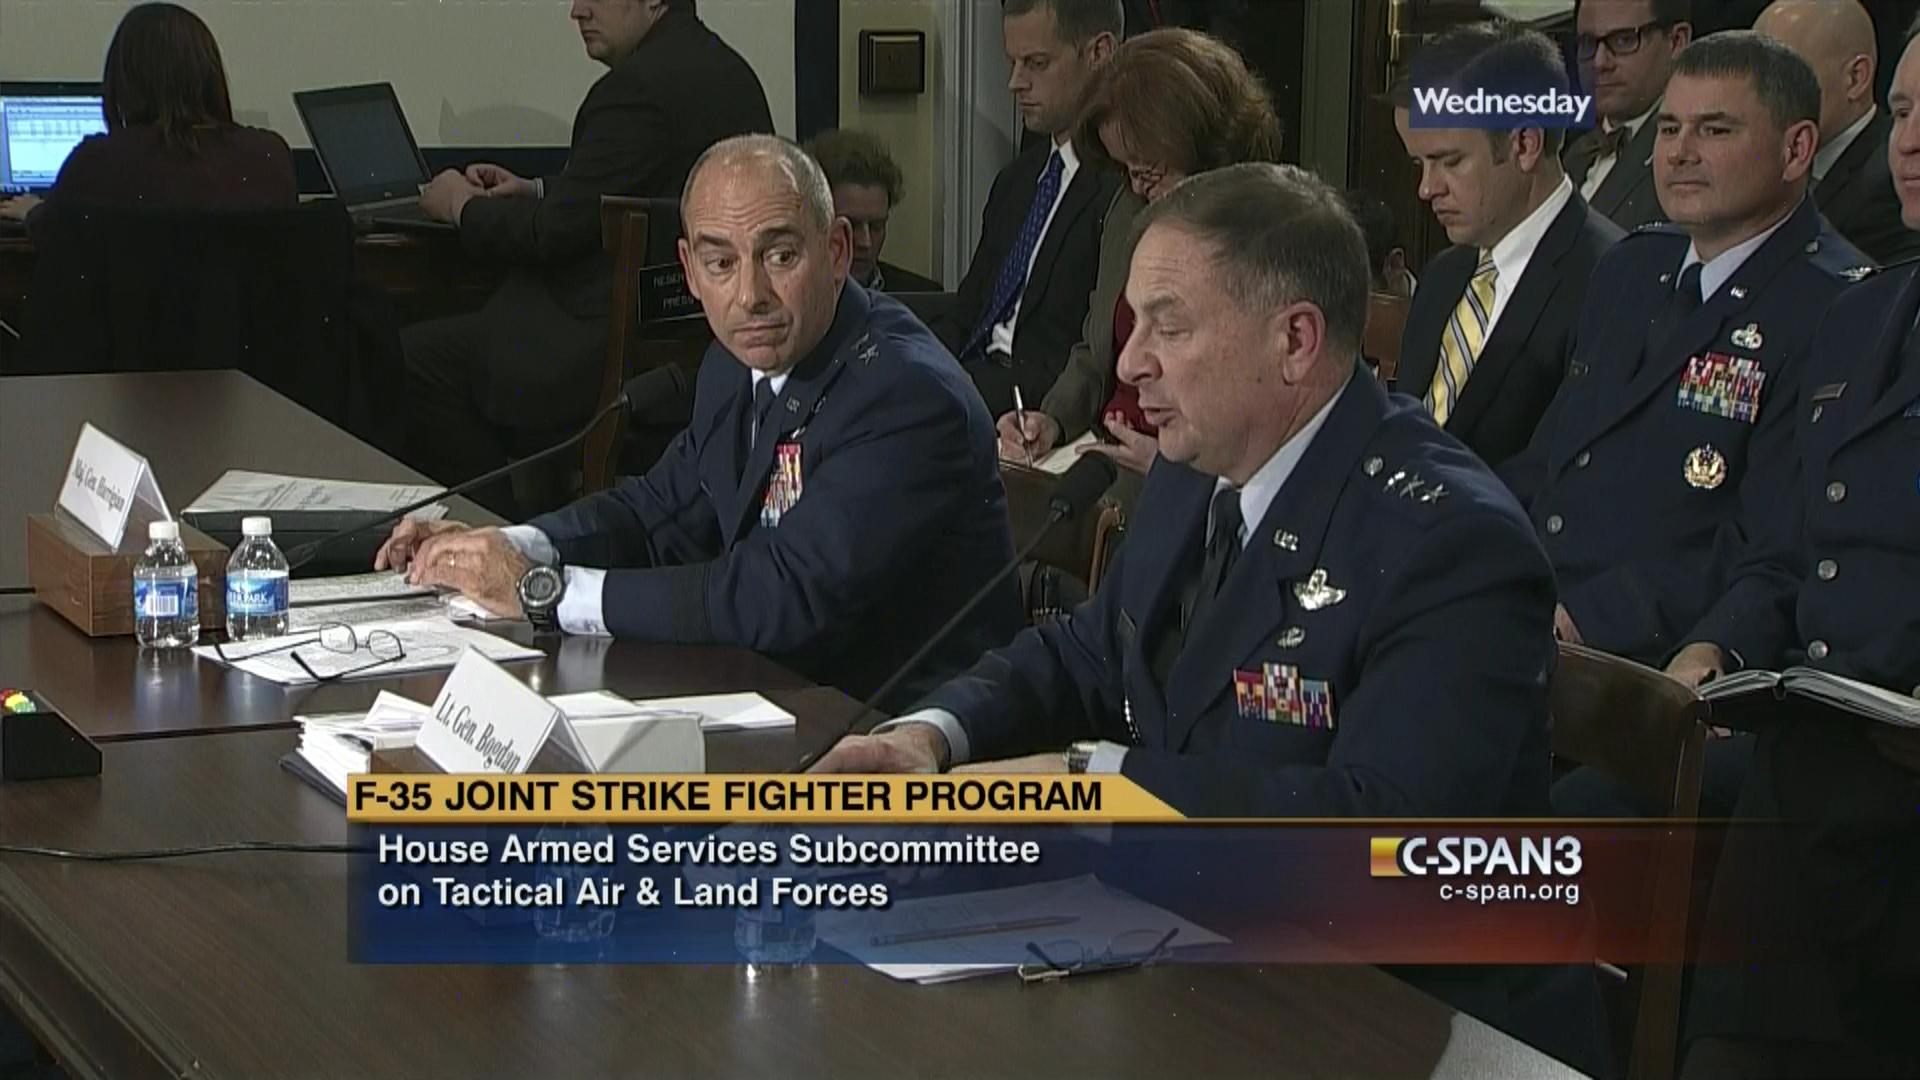 hearing f-35 joint strike fighter, oct 21 2015 | c-span